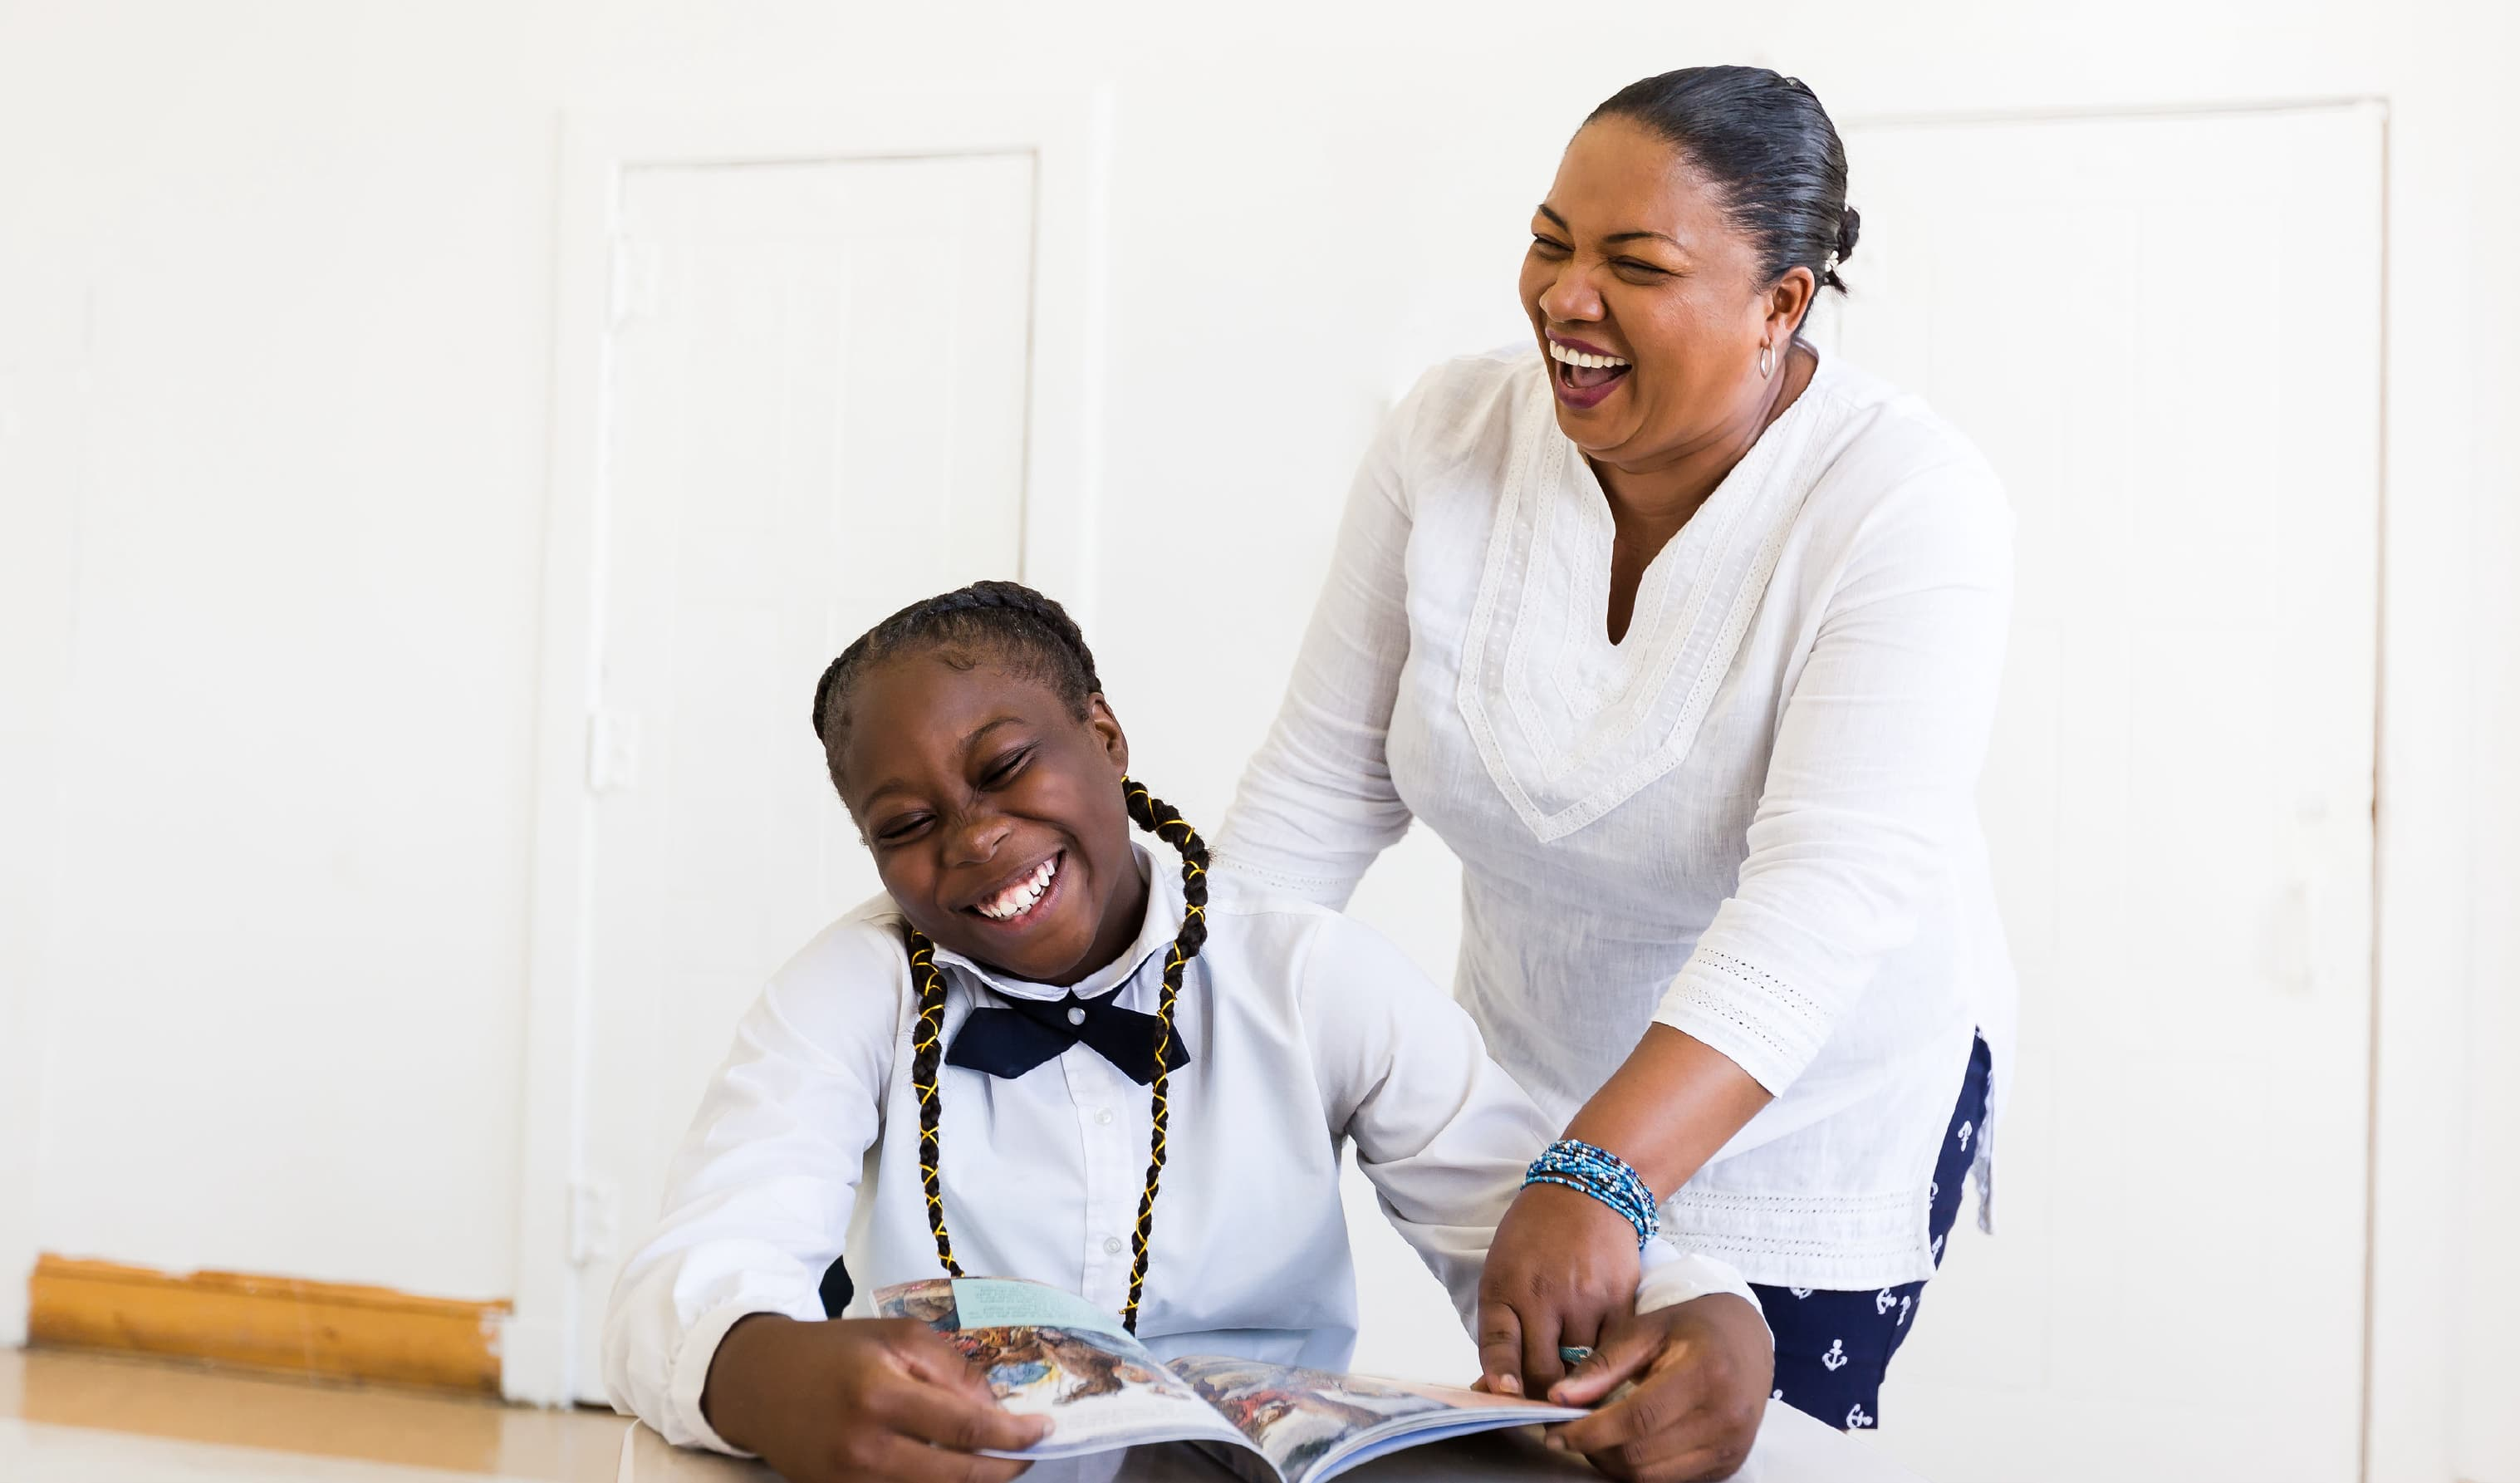 A student and teacher laughing together while reading a book